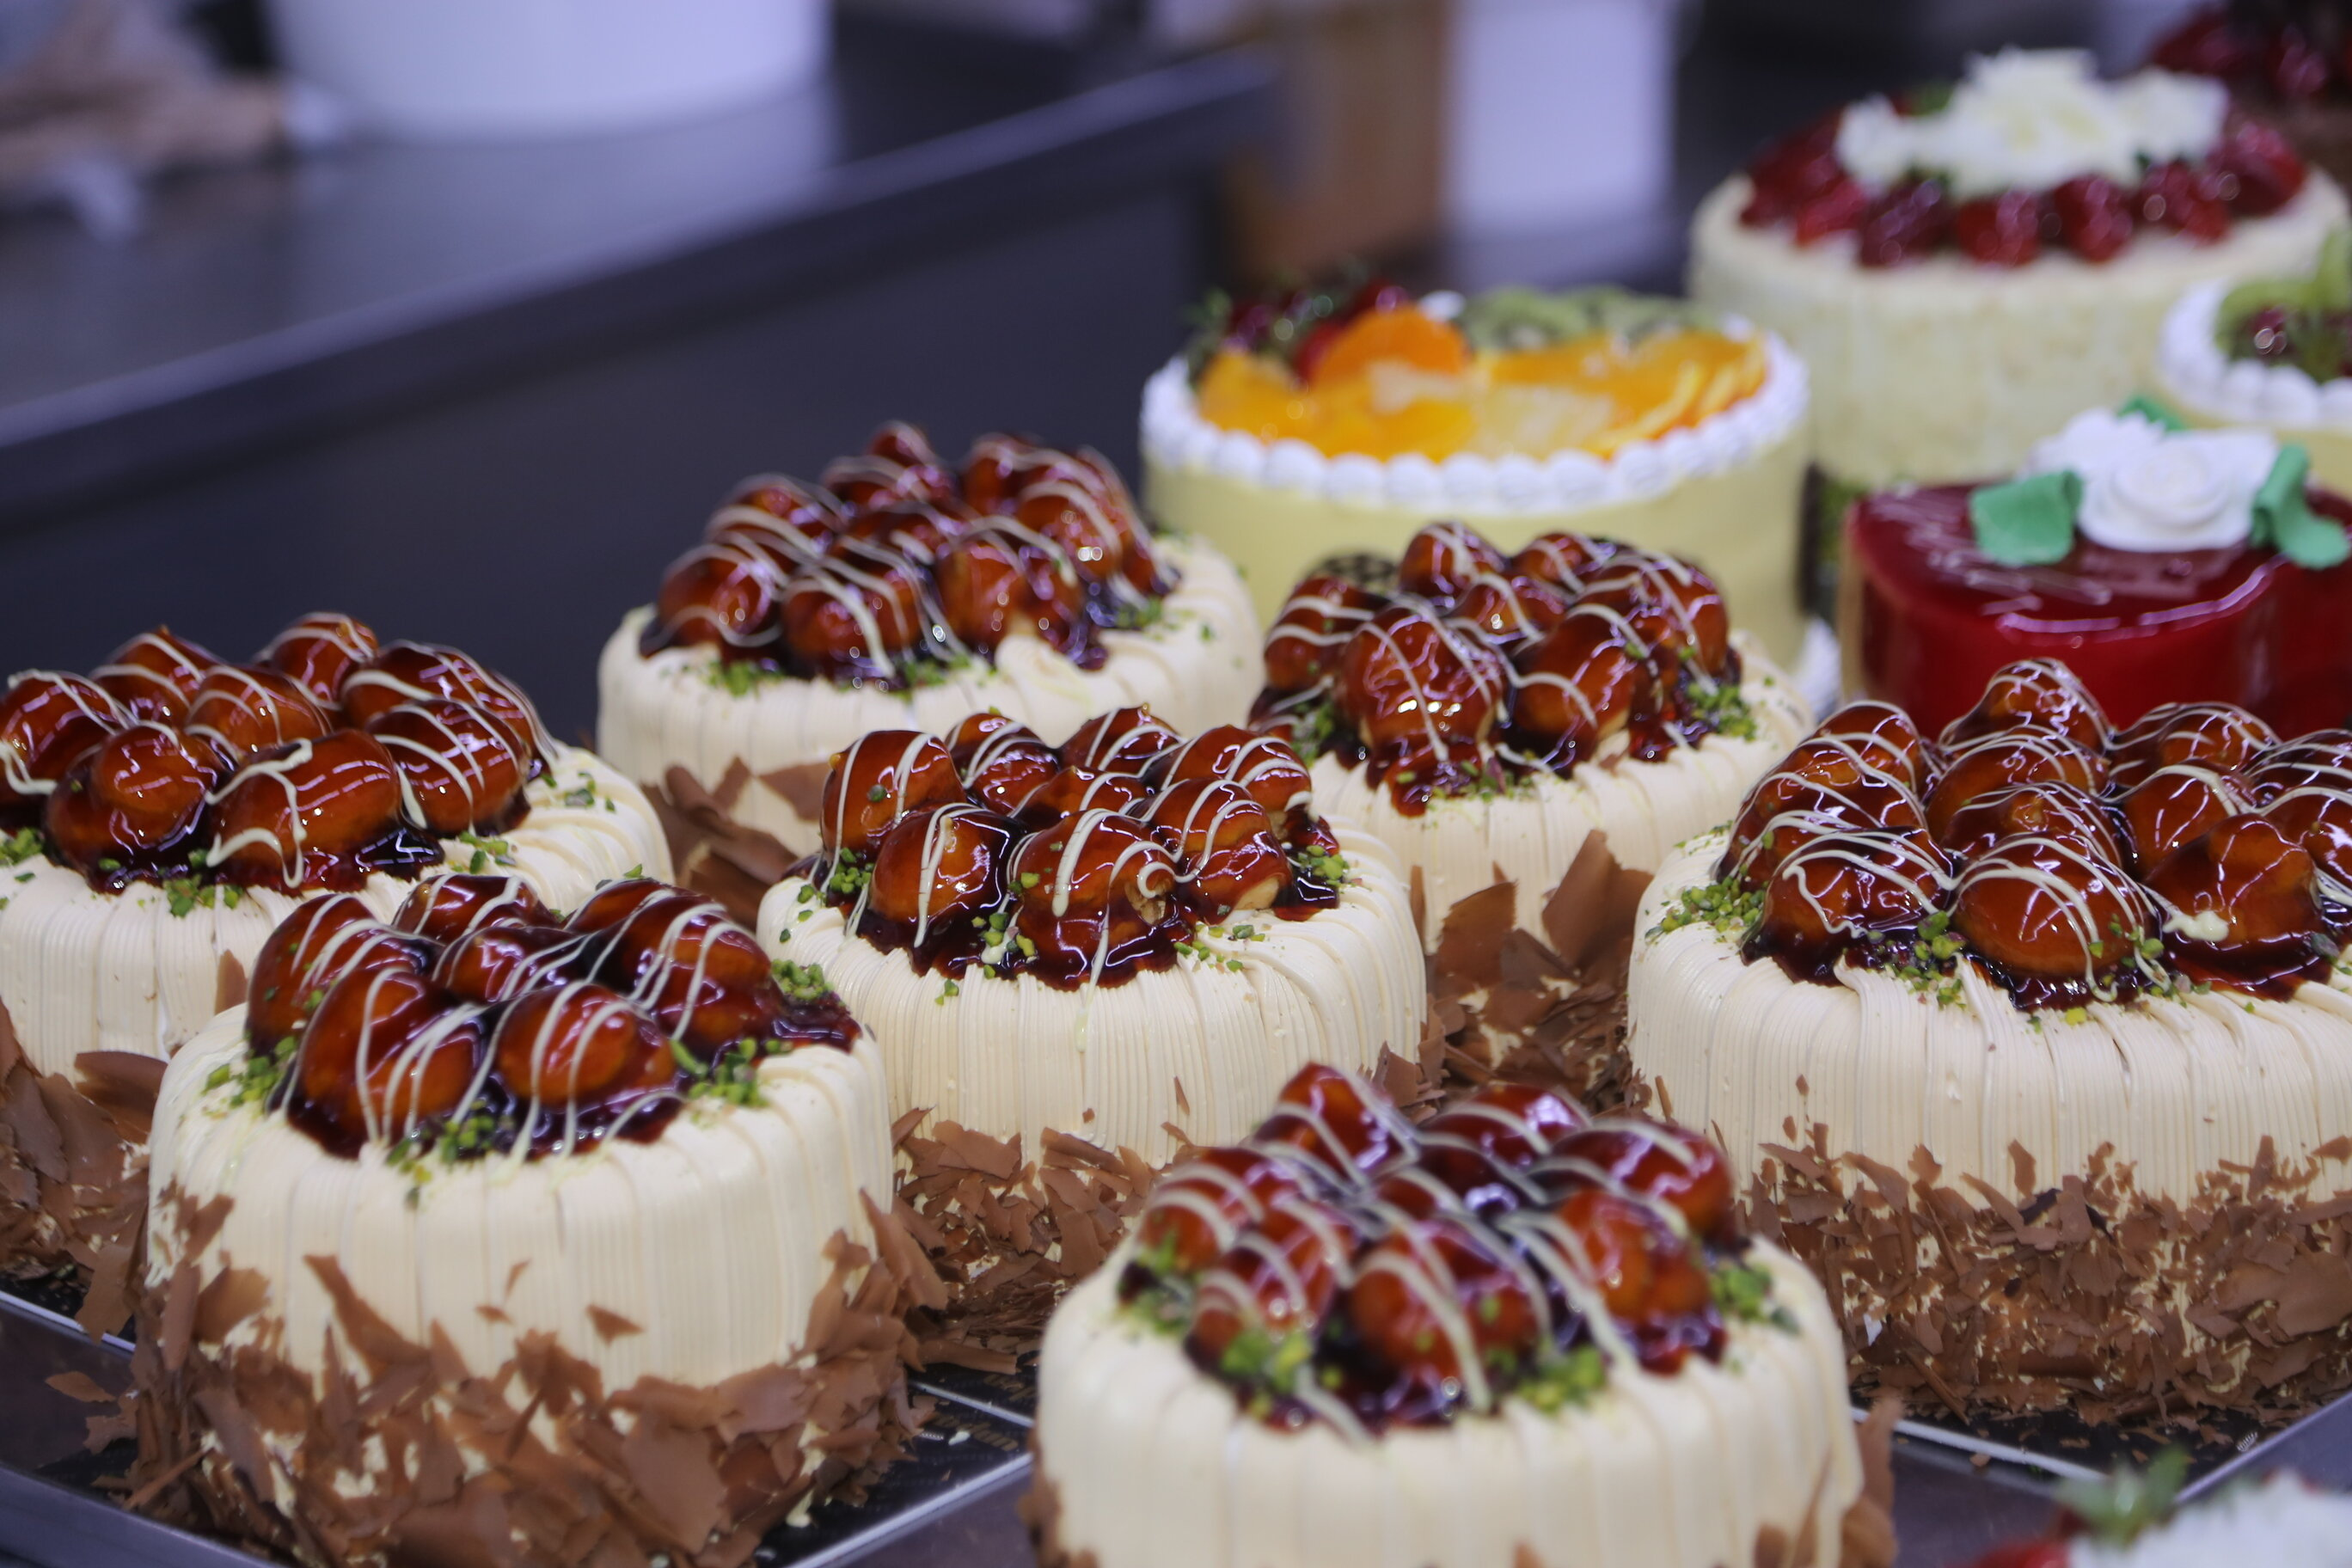 Bakers, cakes and baklava: Mouthwatering Ramadan delights in Turkey